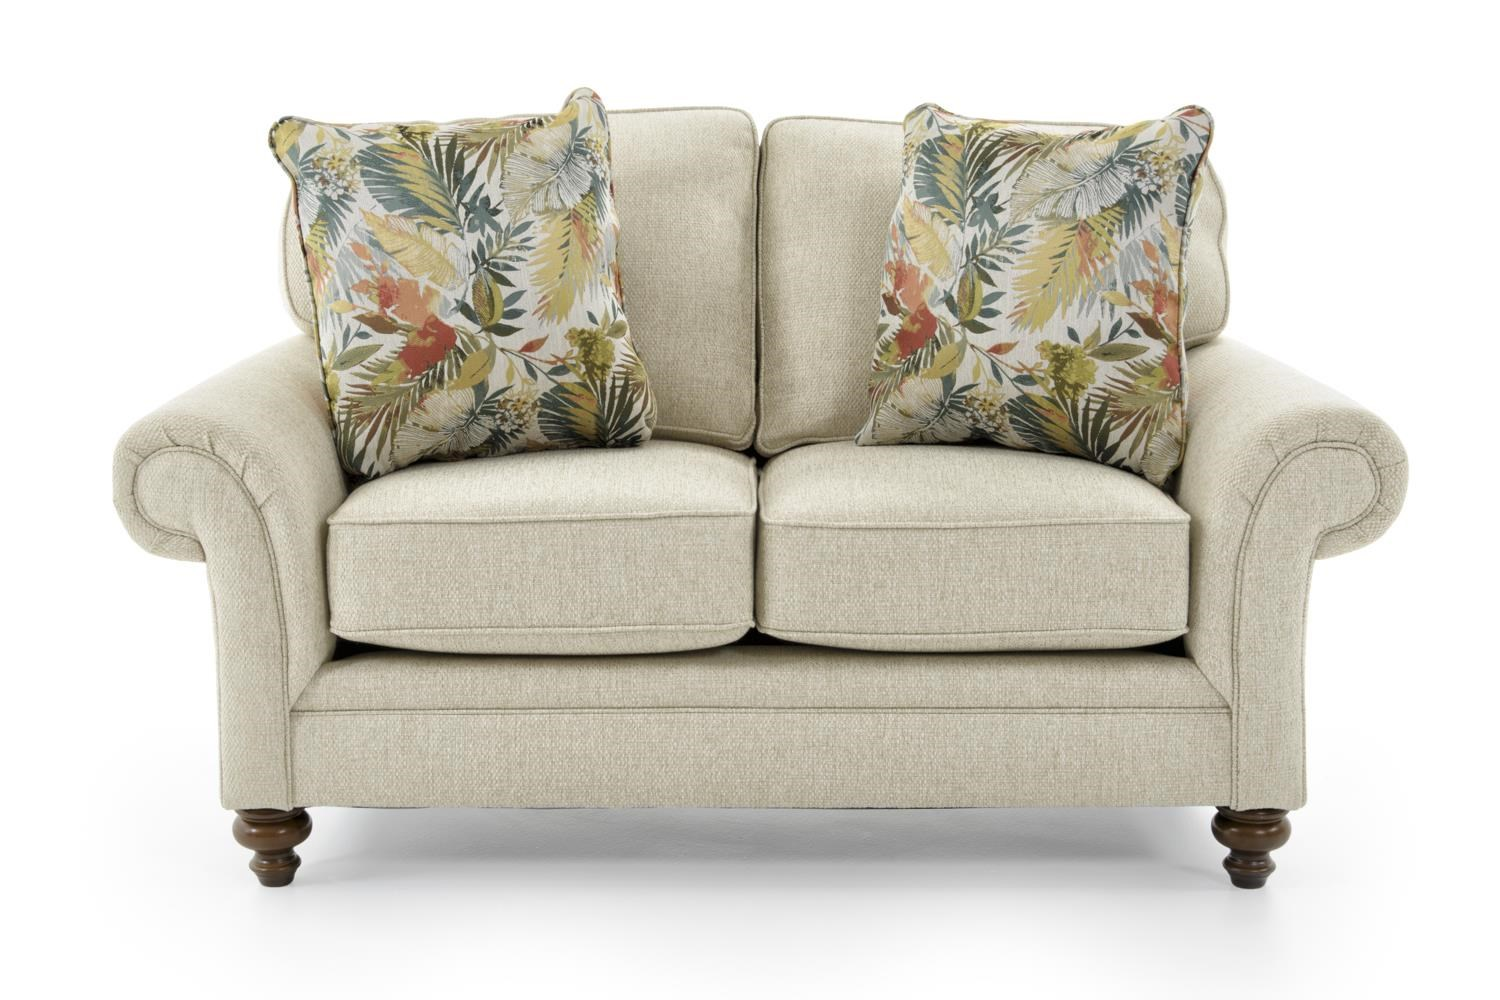 Broyhill Furniture Larissa Upholstered Love Seat - Item Number: 6112-1 4666-92